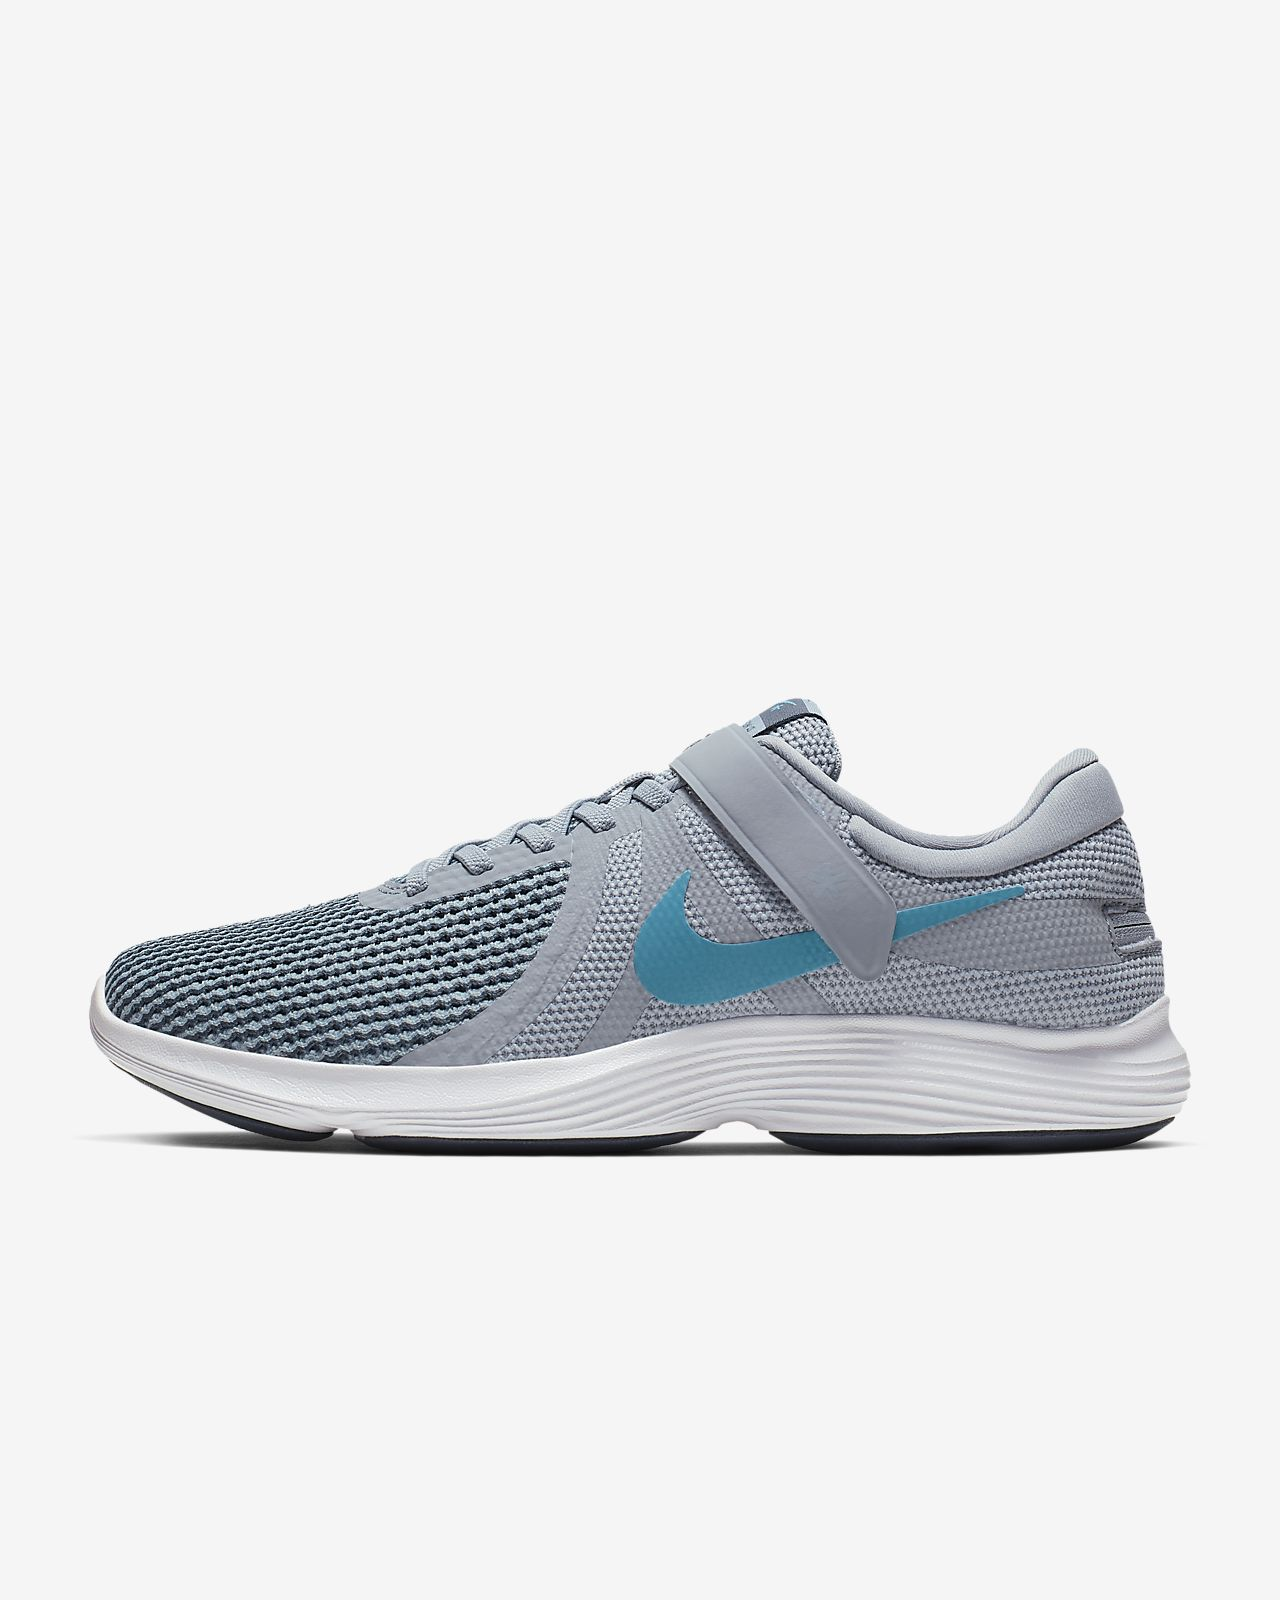 new product bfc6f 82371 Chaussure de running Nike Revolution 4 FlyEase pour Homme. Nike.com FR